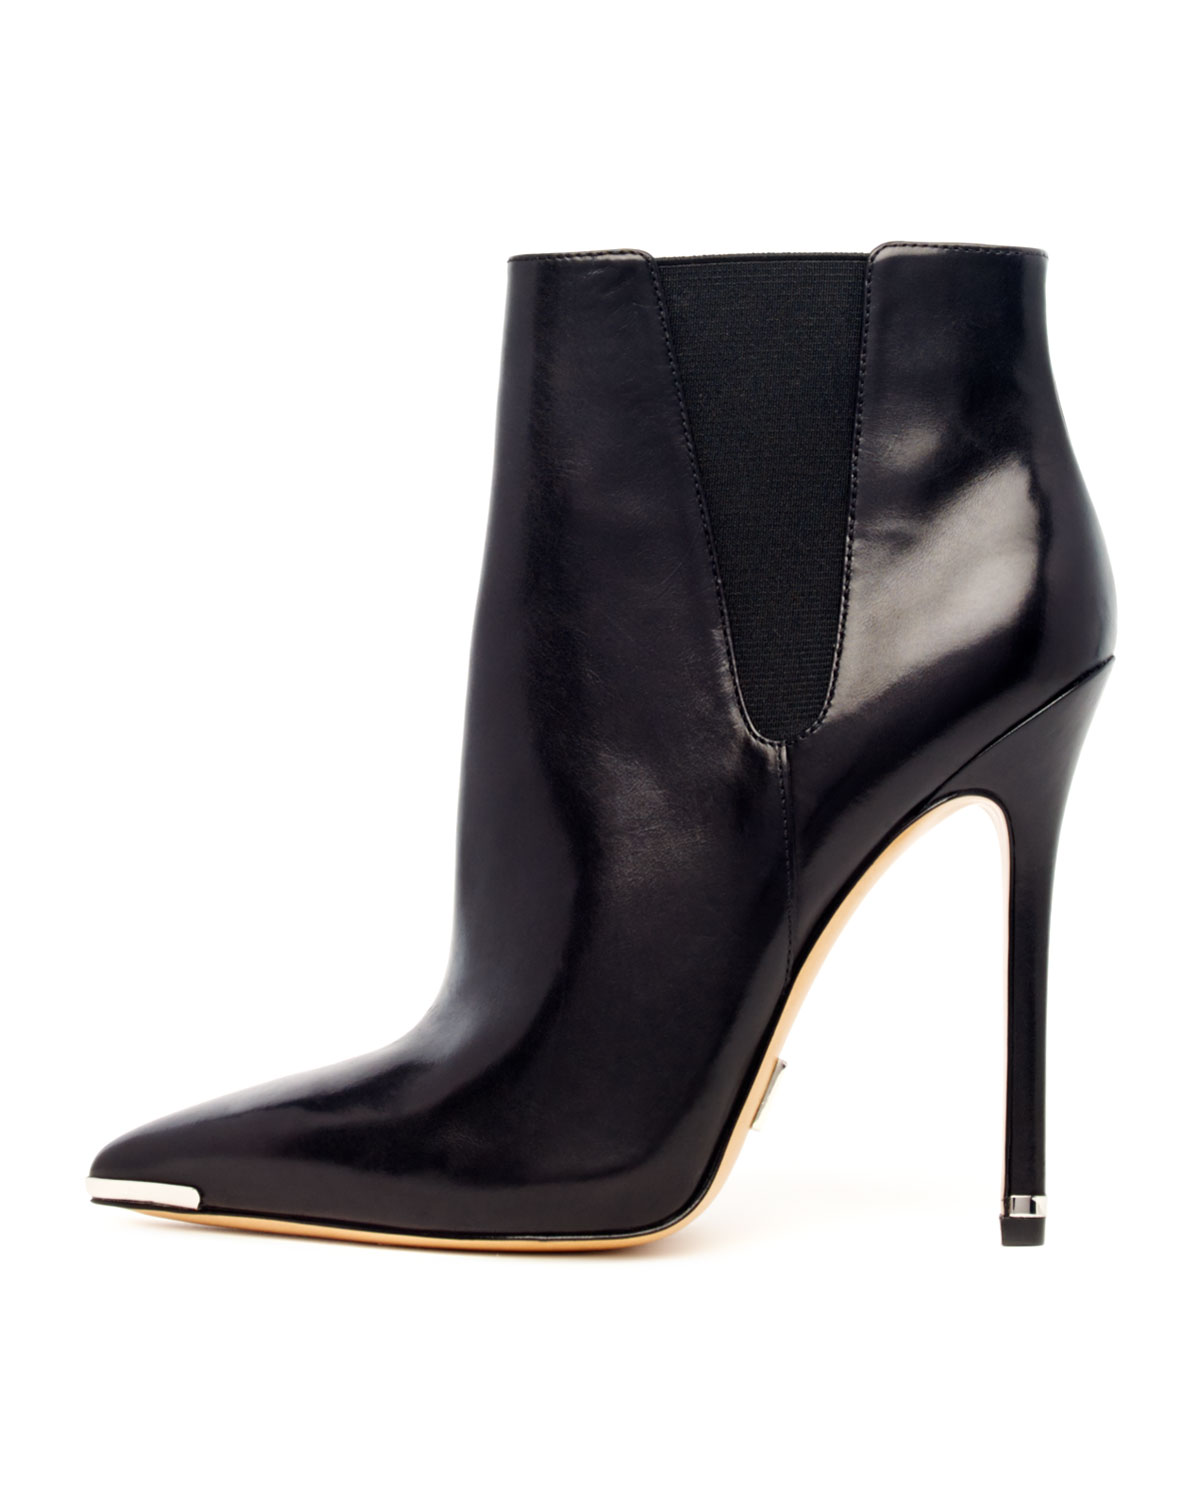 01a4a7739d49e Michael kors Andie Pointedtoe Bootie in Black